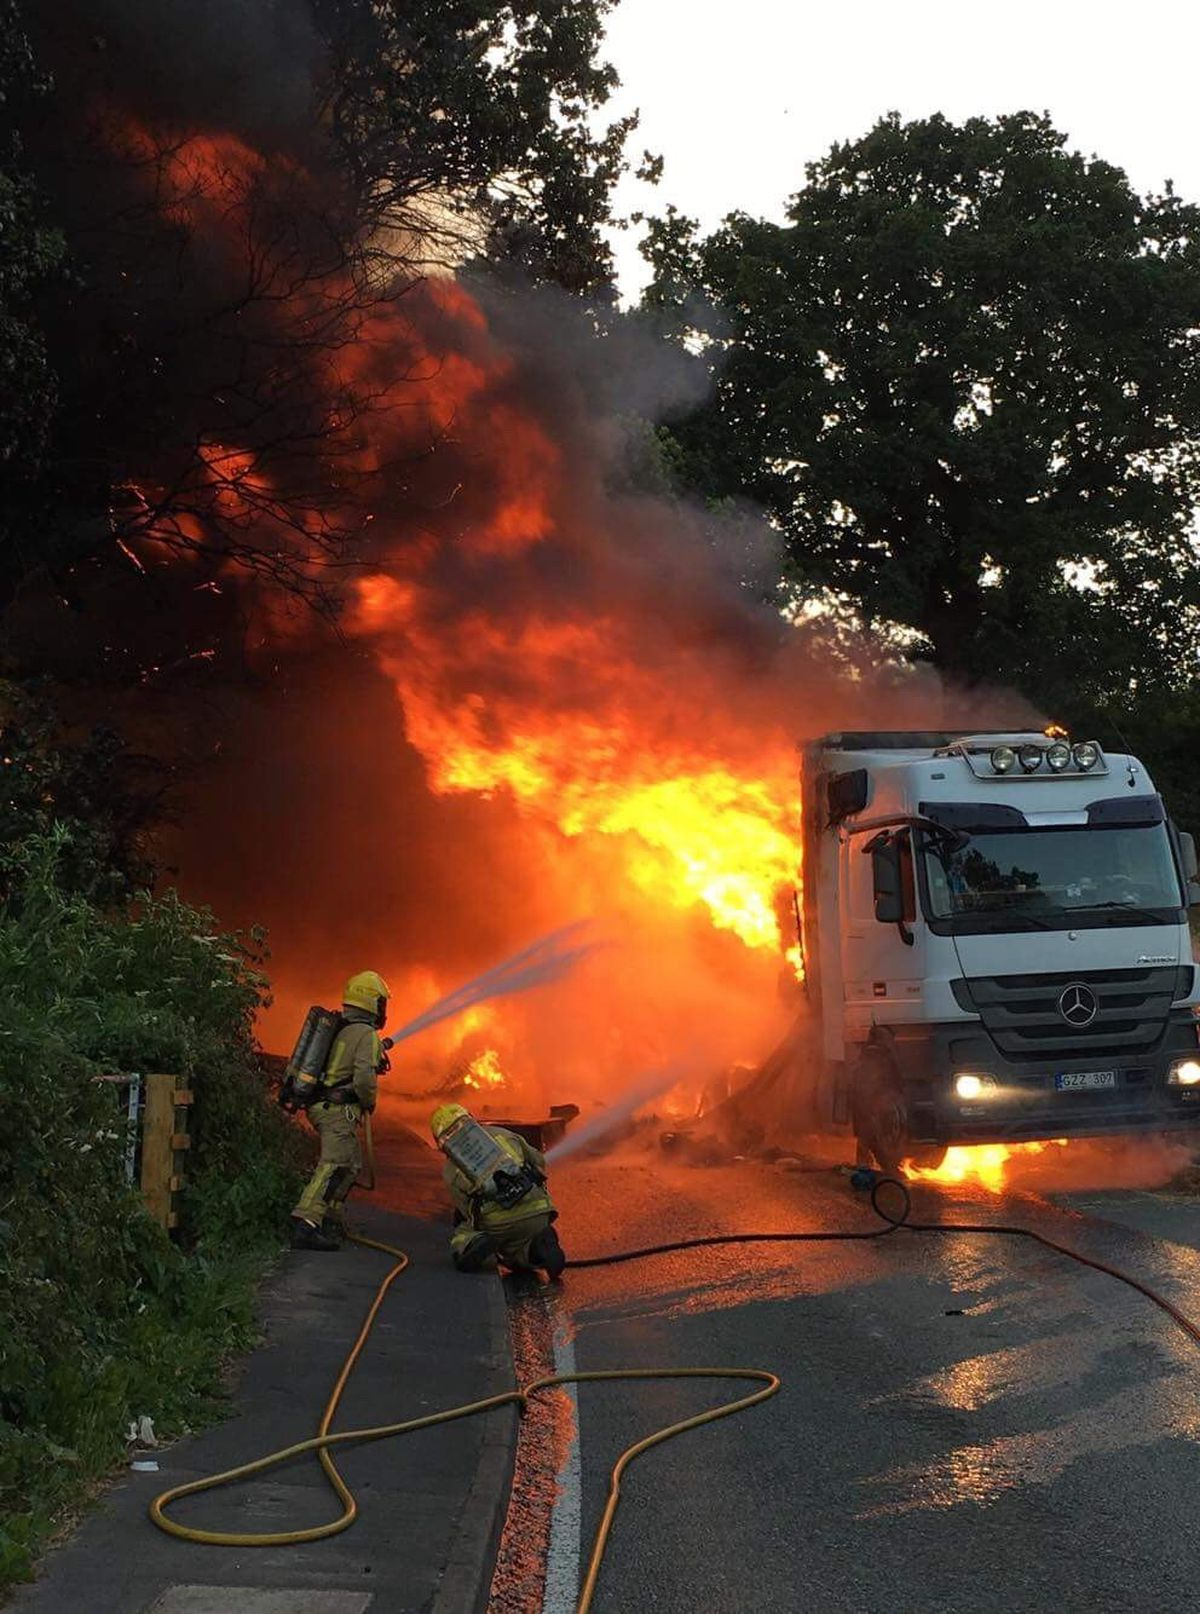 Flames burst from the lorry